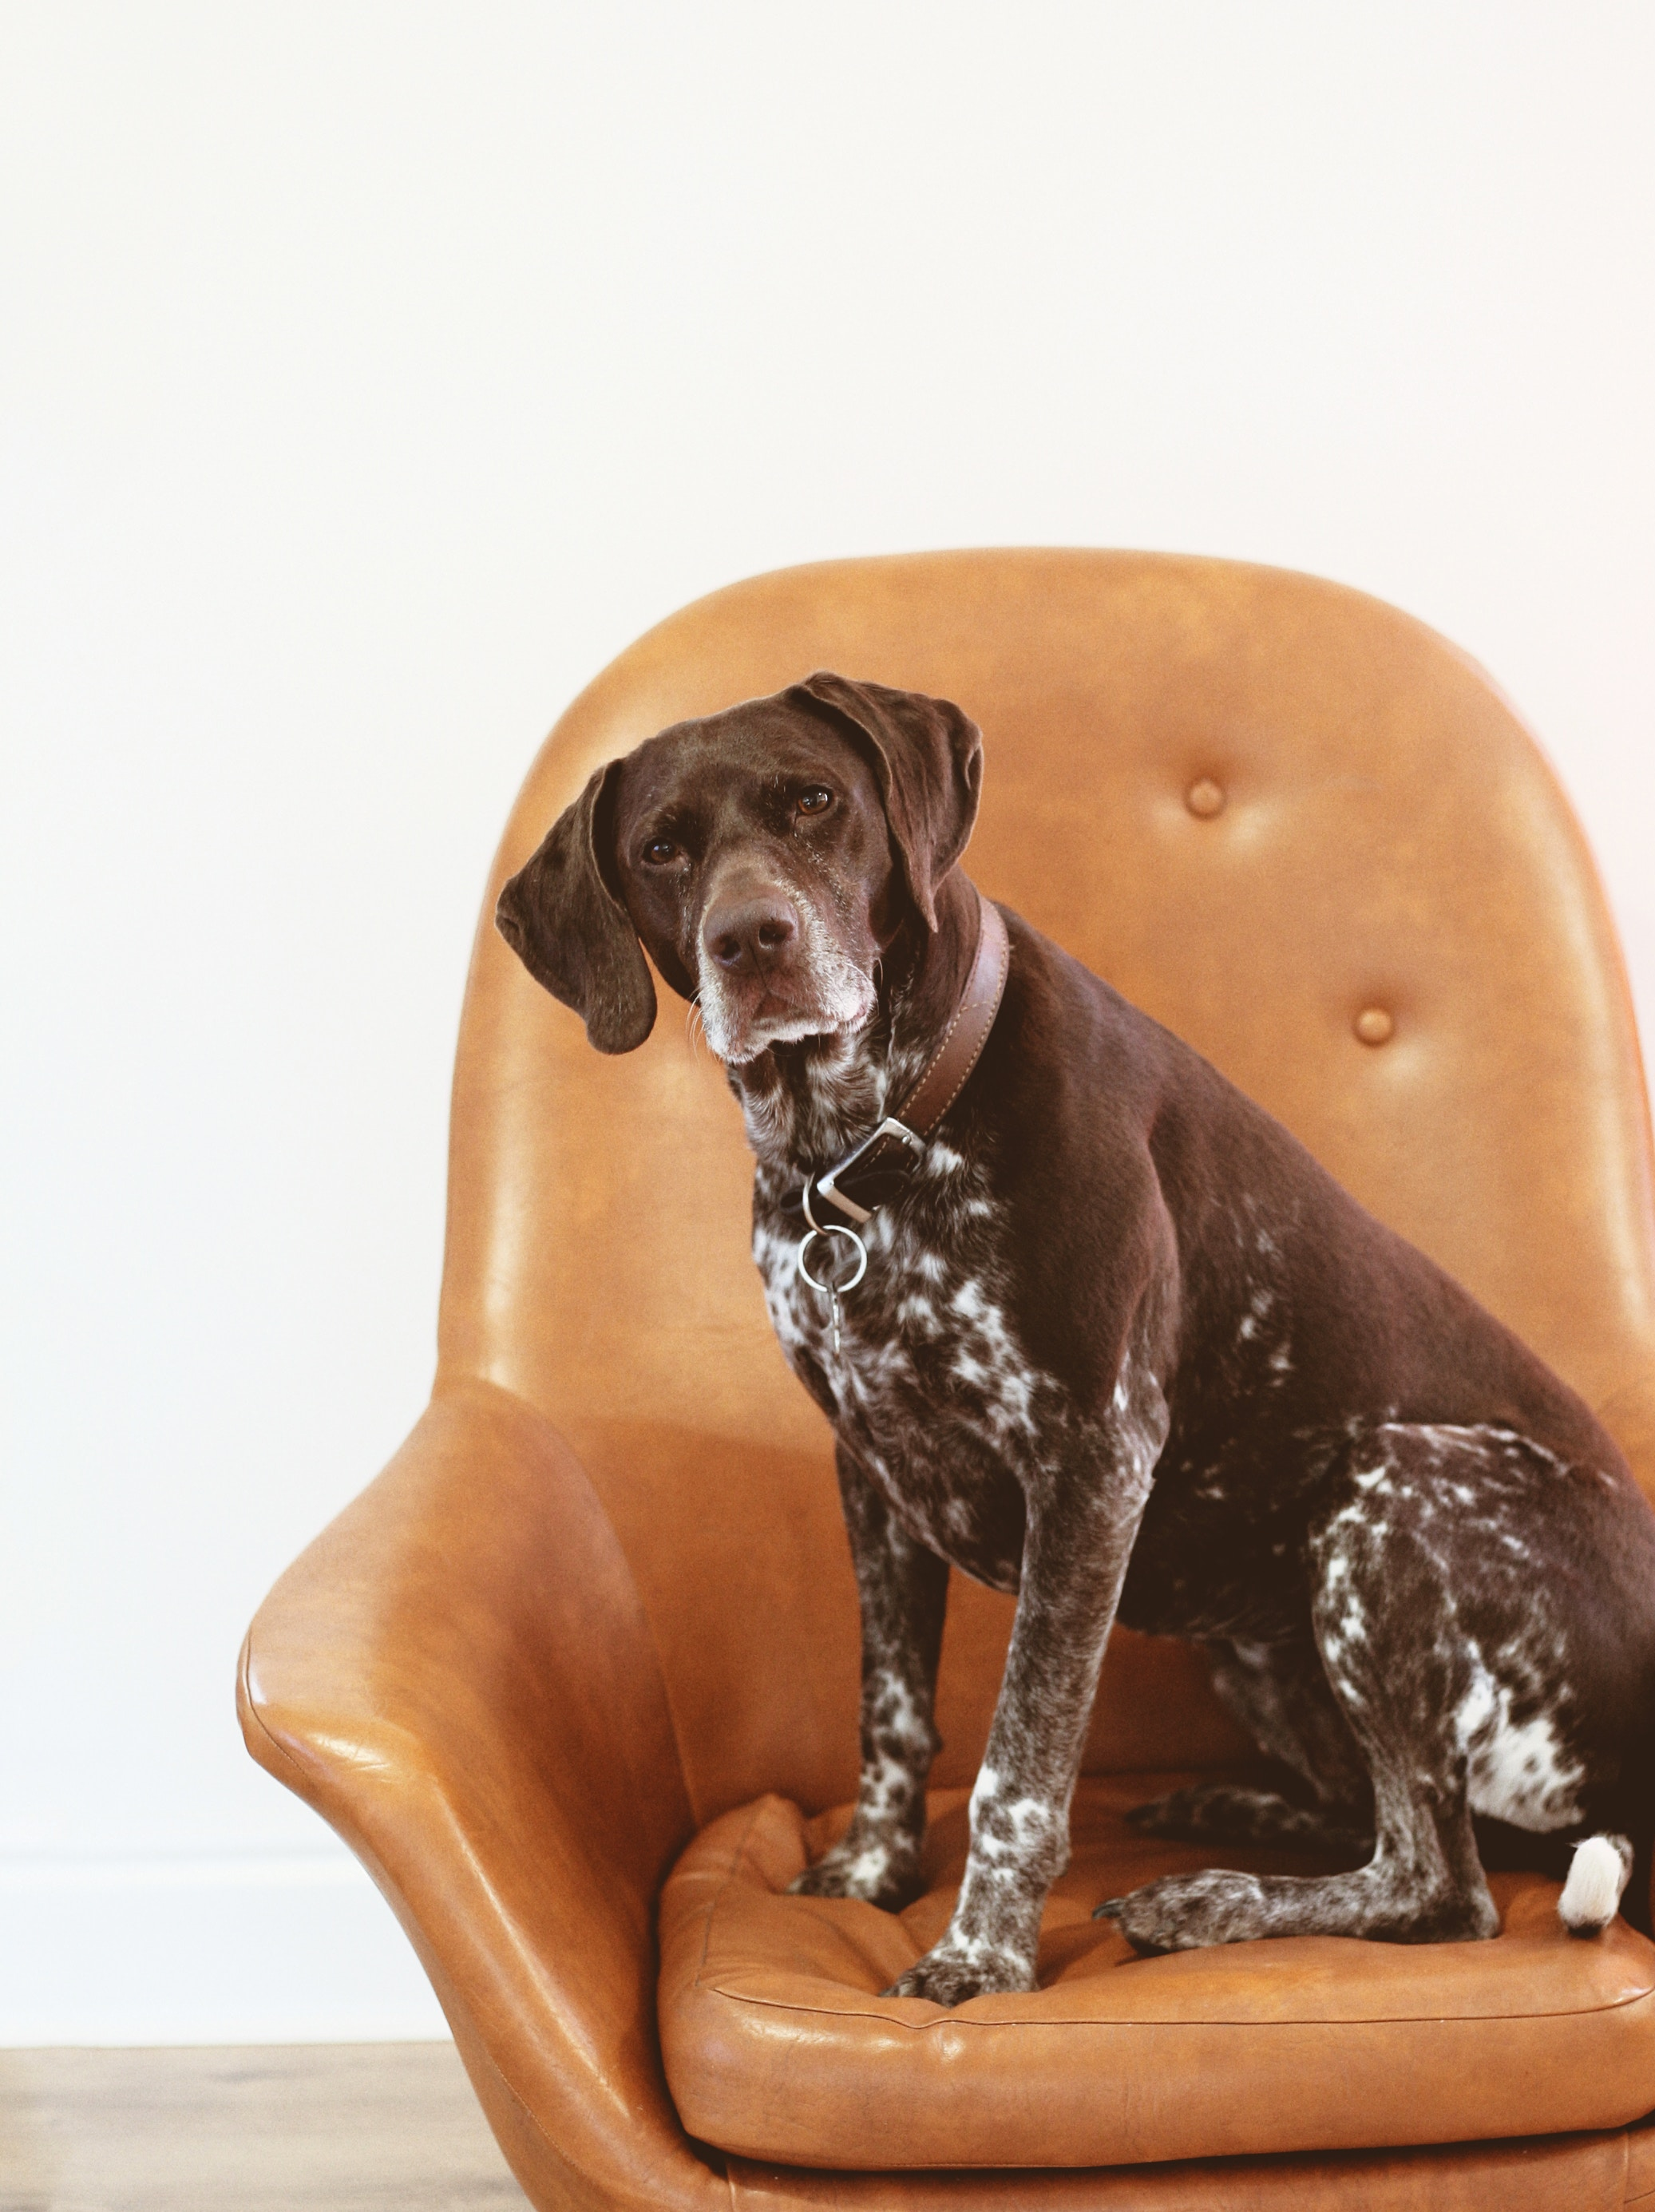 Dog with dementia on a chair